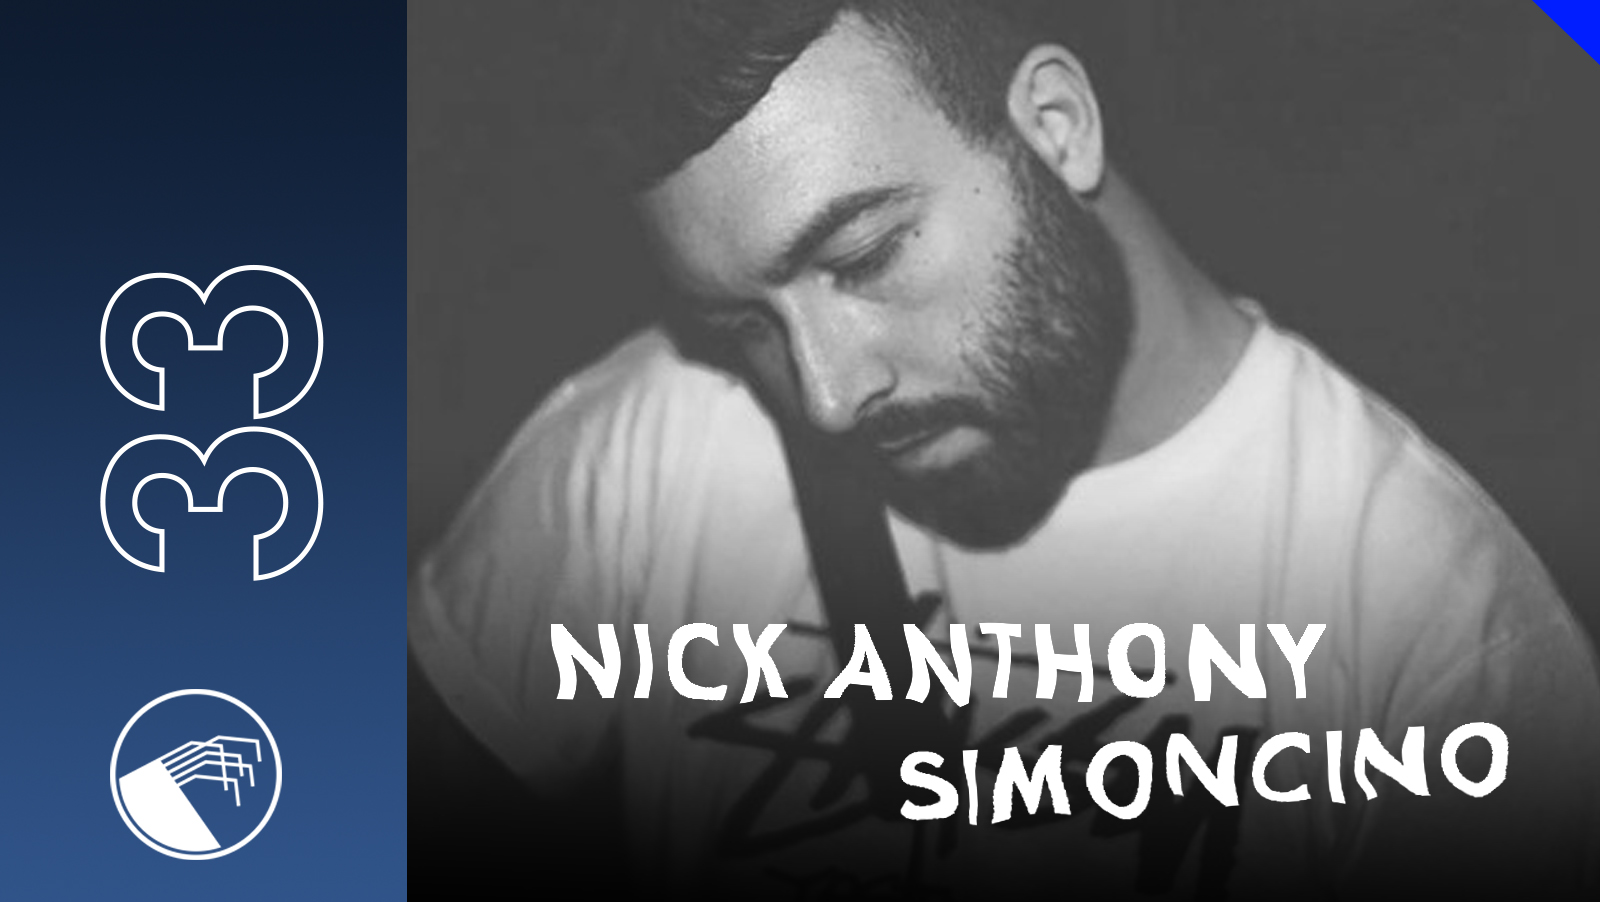 033 Nick Anthony Simoncino